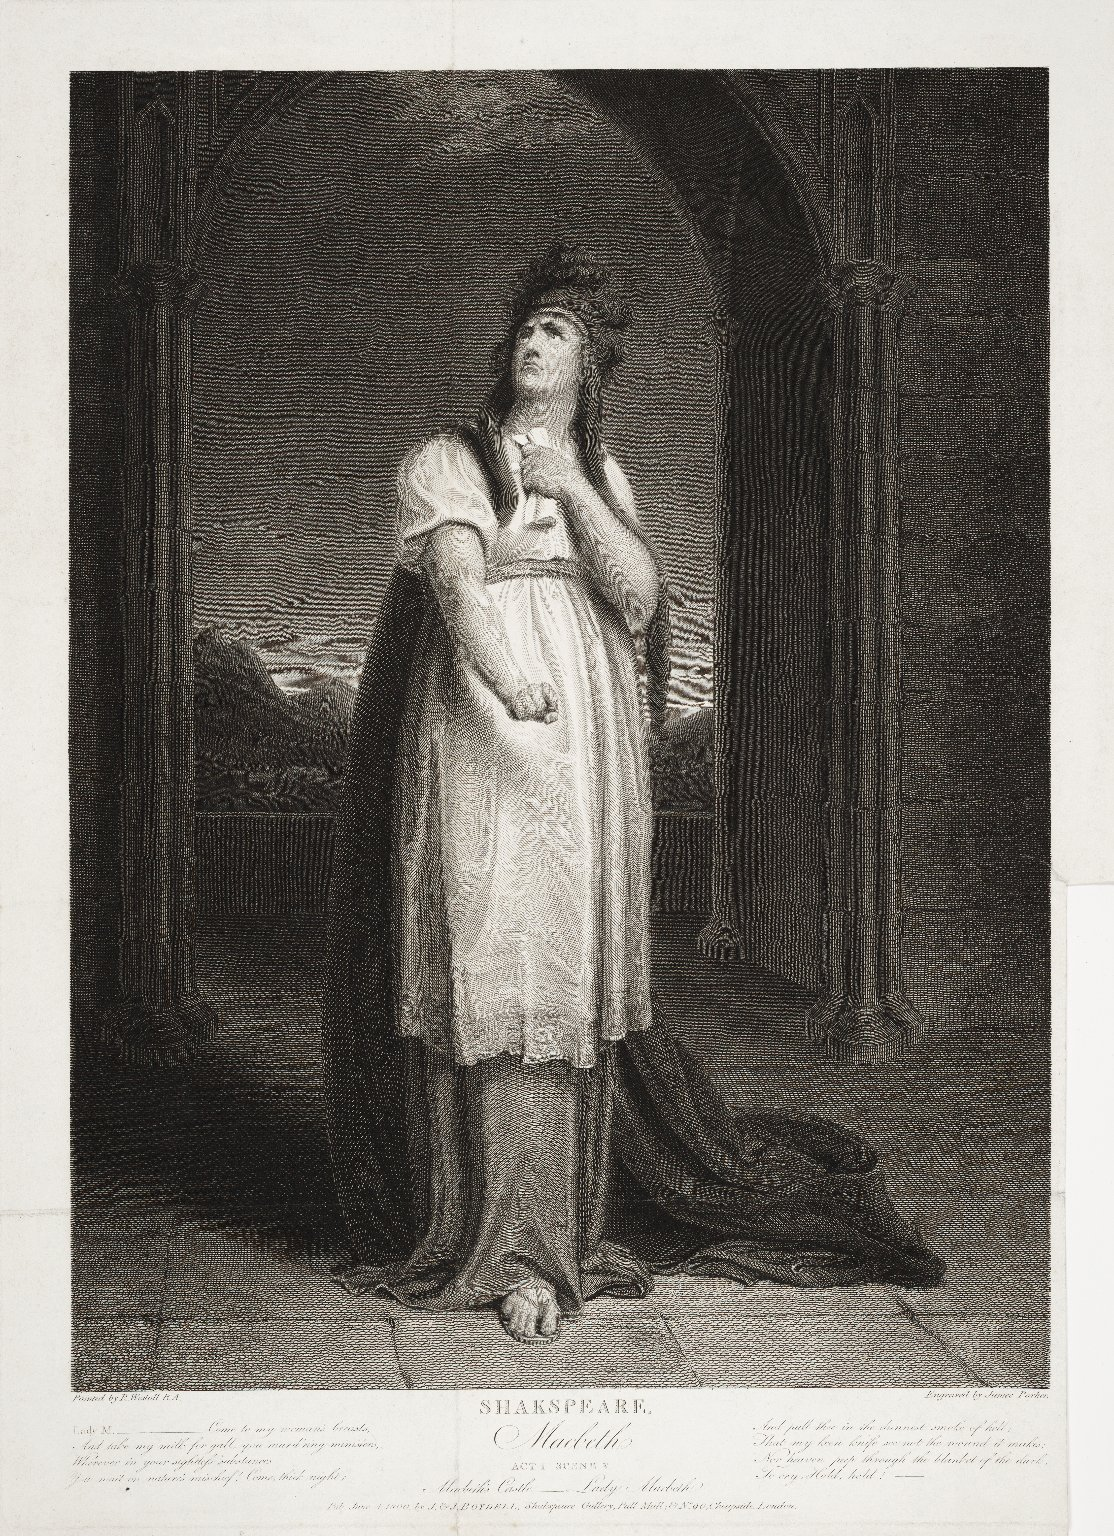 Macbeth, act I, scene V, Macbeth's castle -- Lady Macbeth [graphic] / painted by R. Westall ; engraved by James Parker.